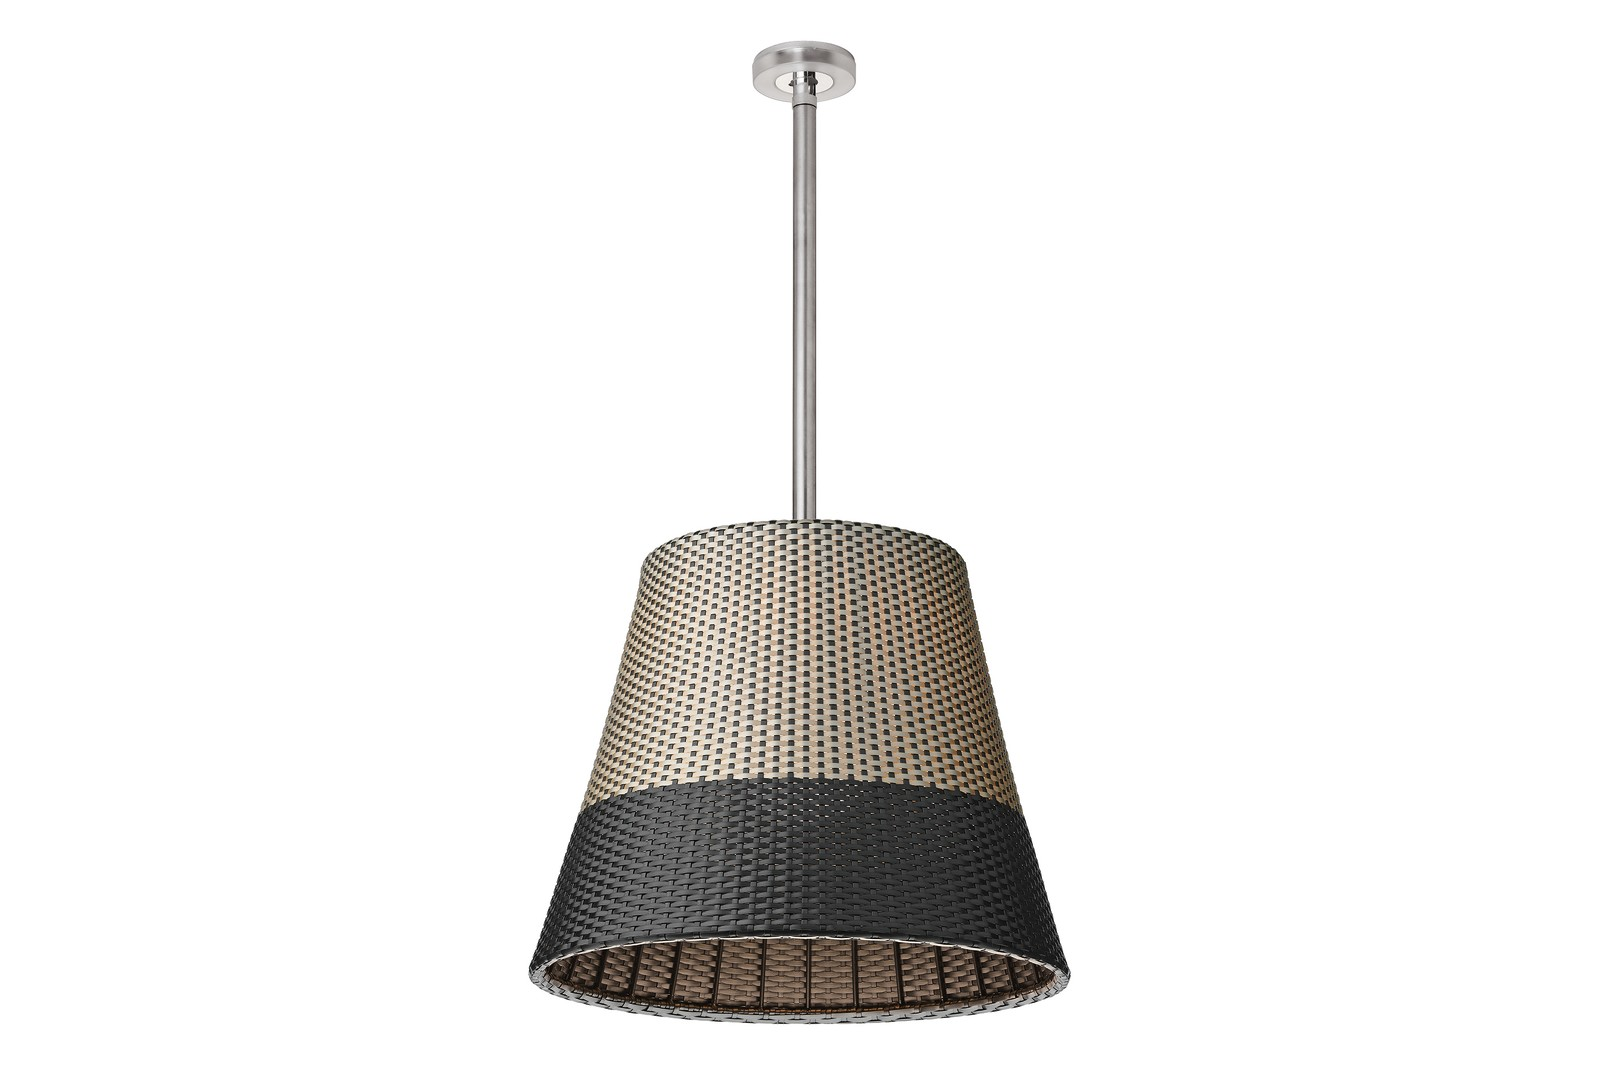 Romeo C3 Outdoor Pendant Light Panama, 71 cm